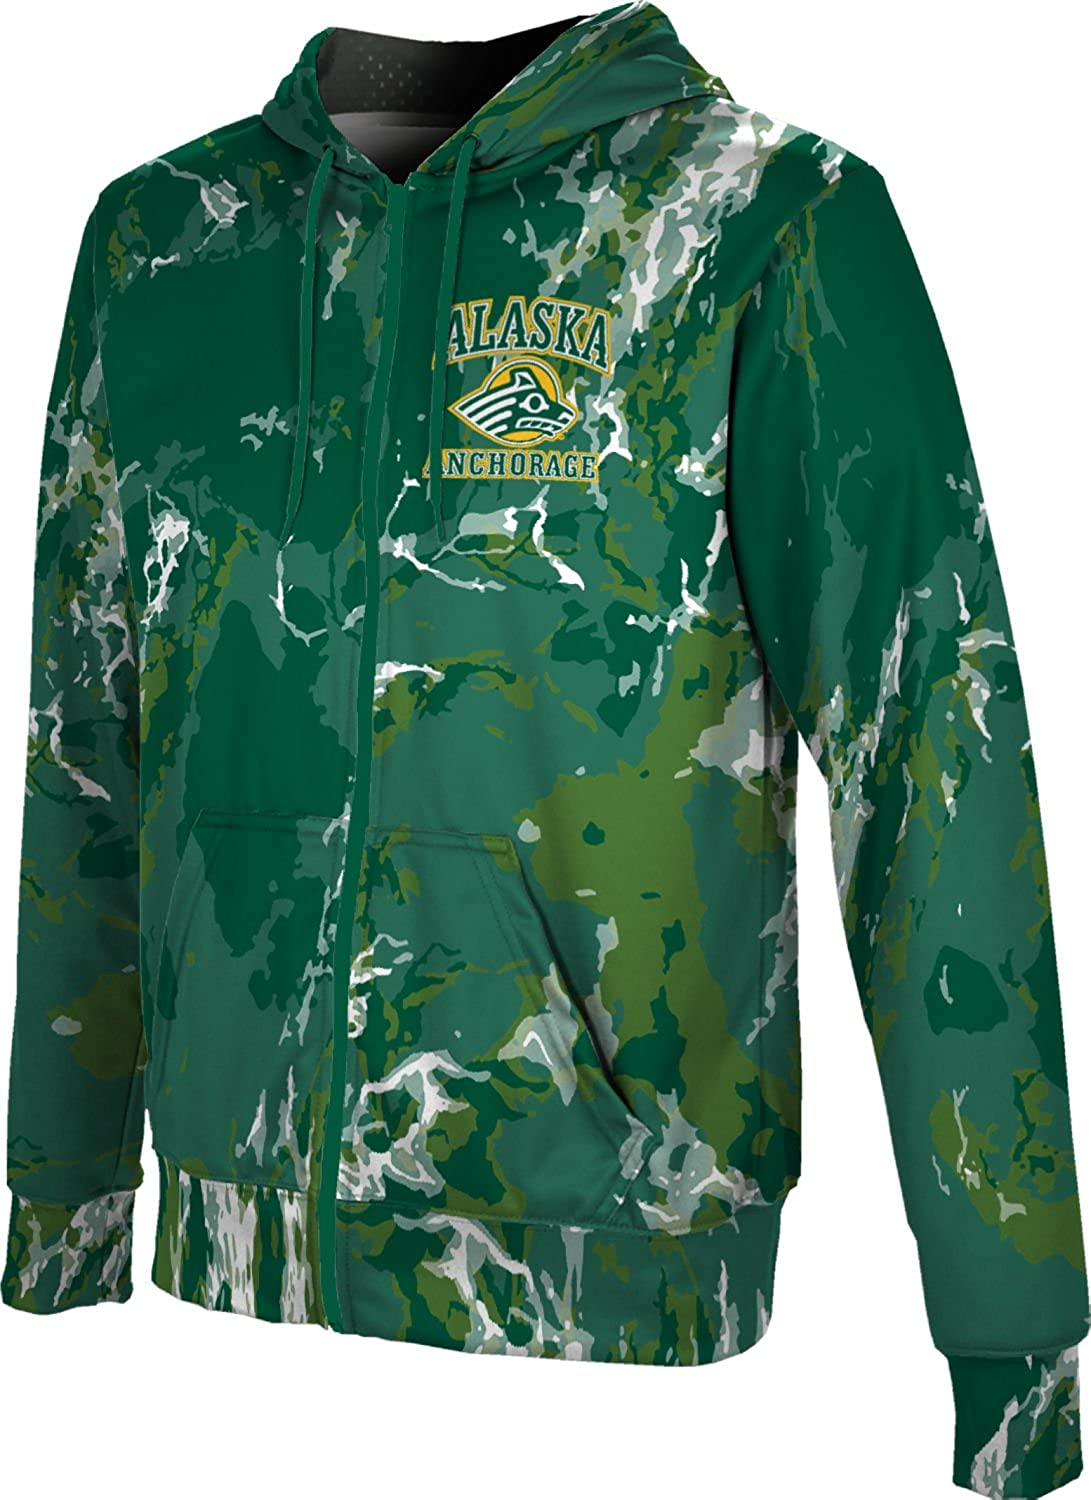 Marble ProSphere University of Alaska Anchorage Boys Fullzip Hoodie